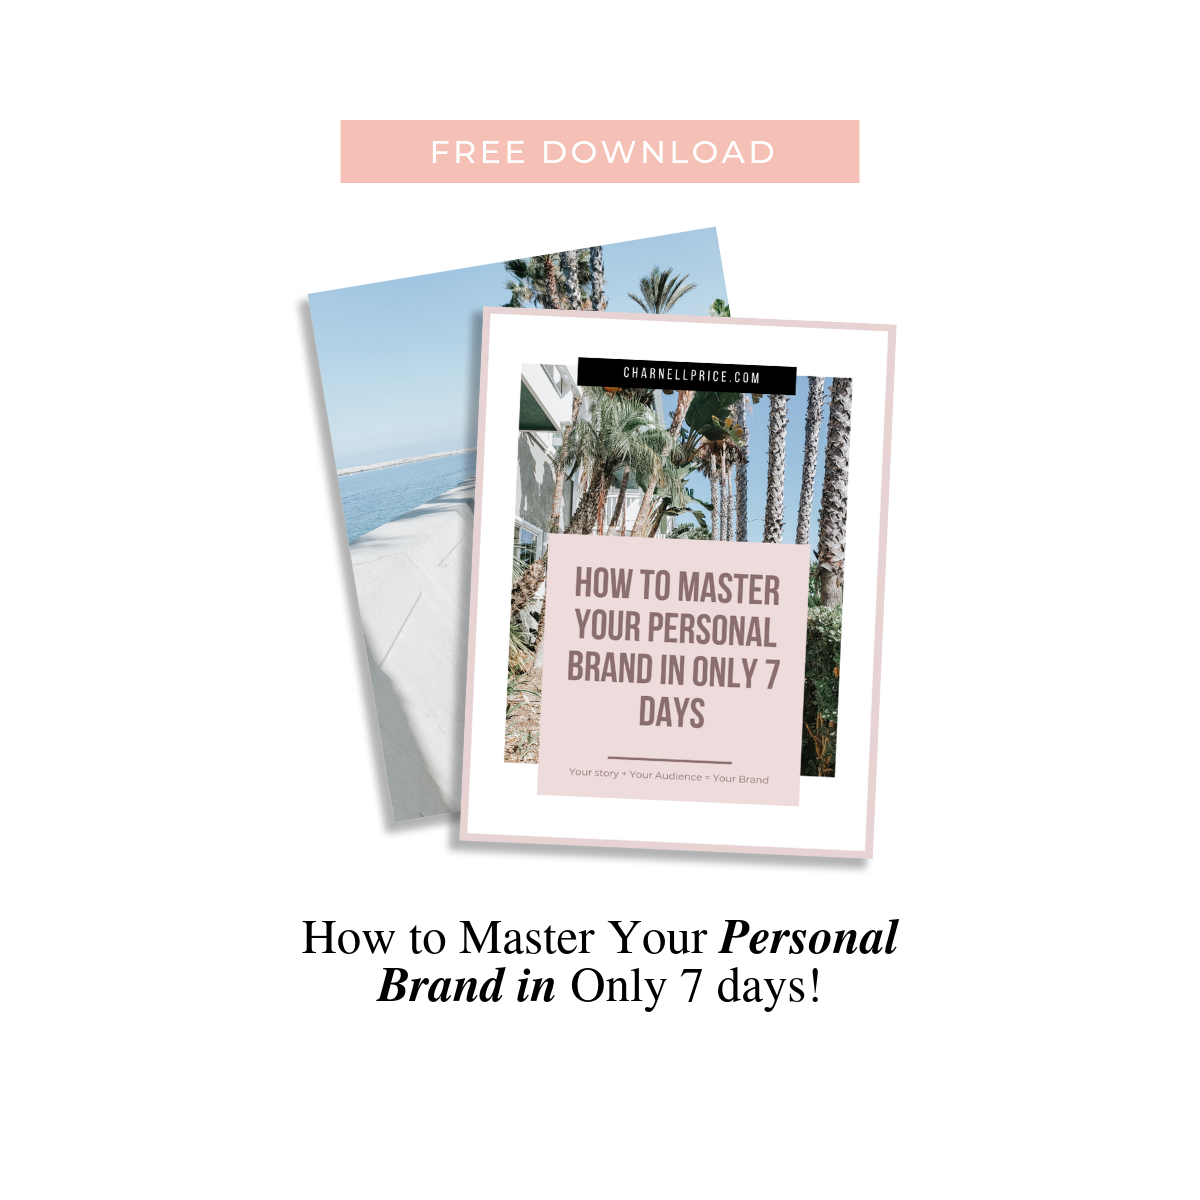 How to Master Your Personal Brand